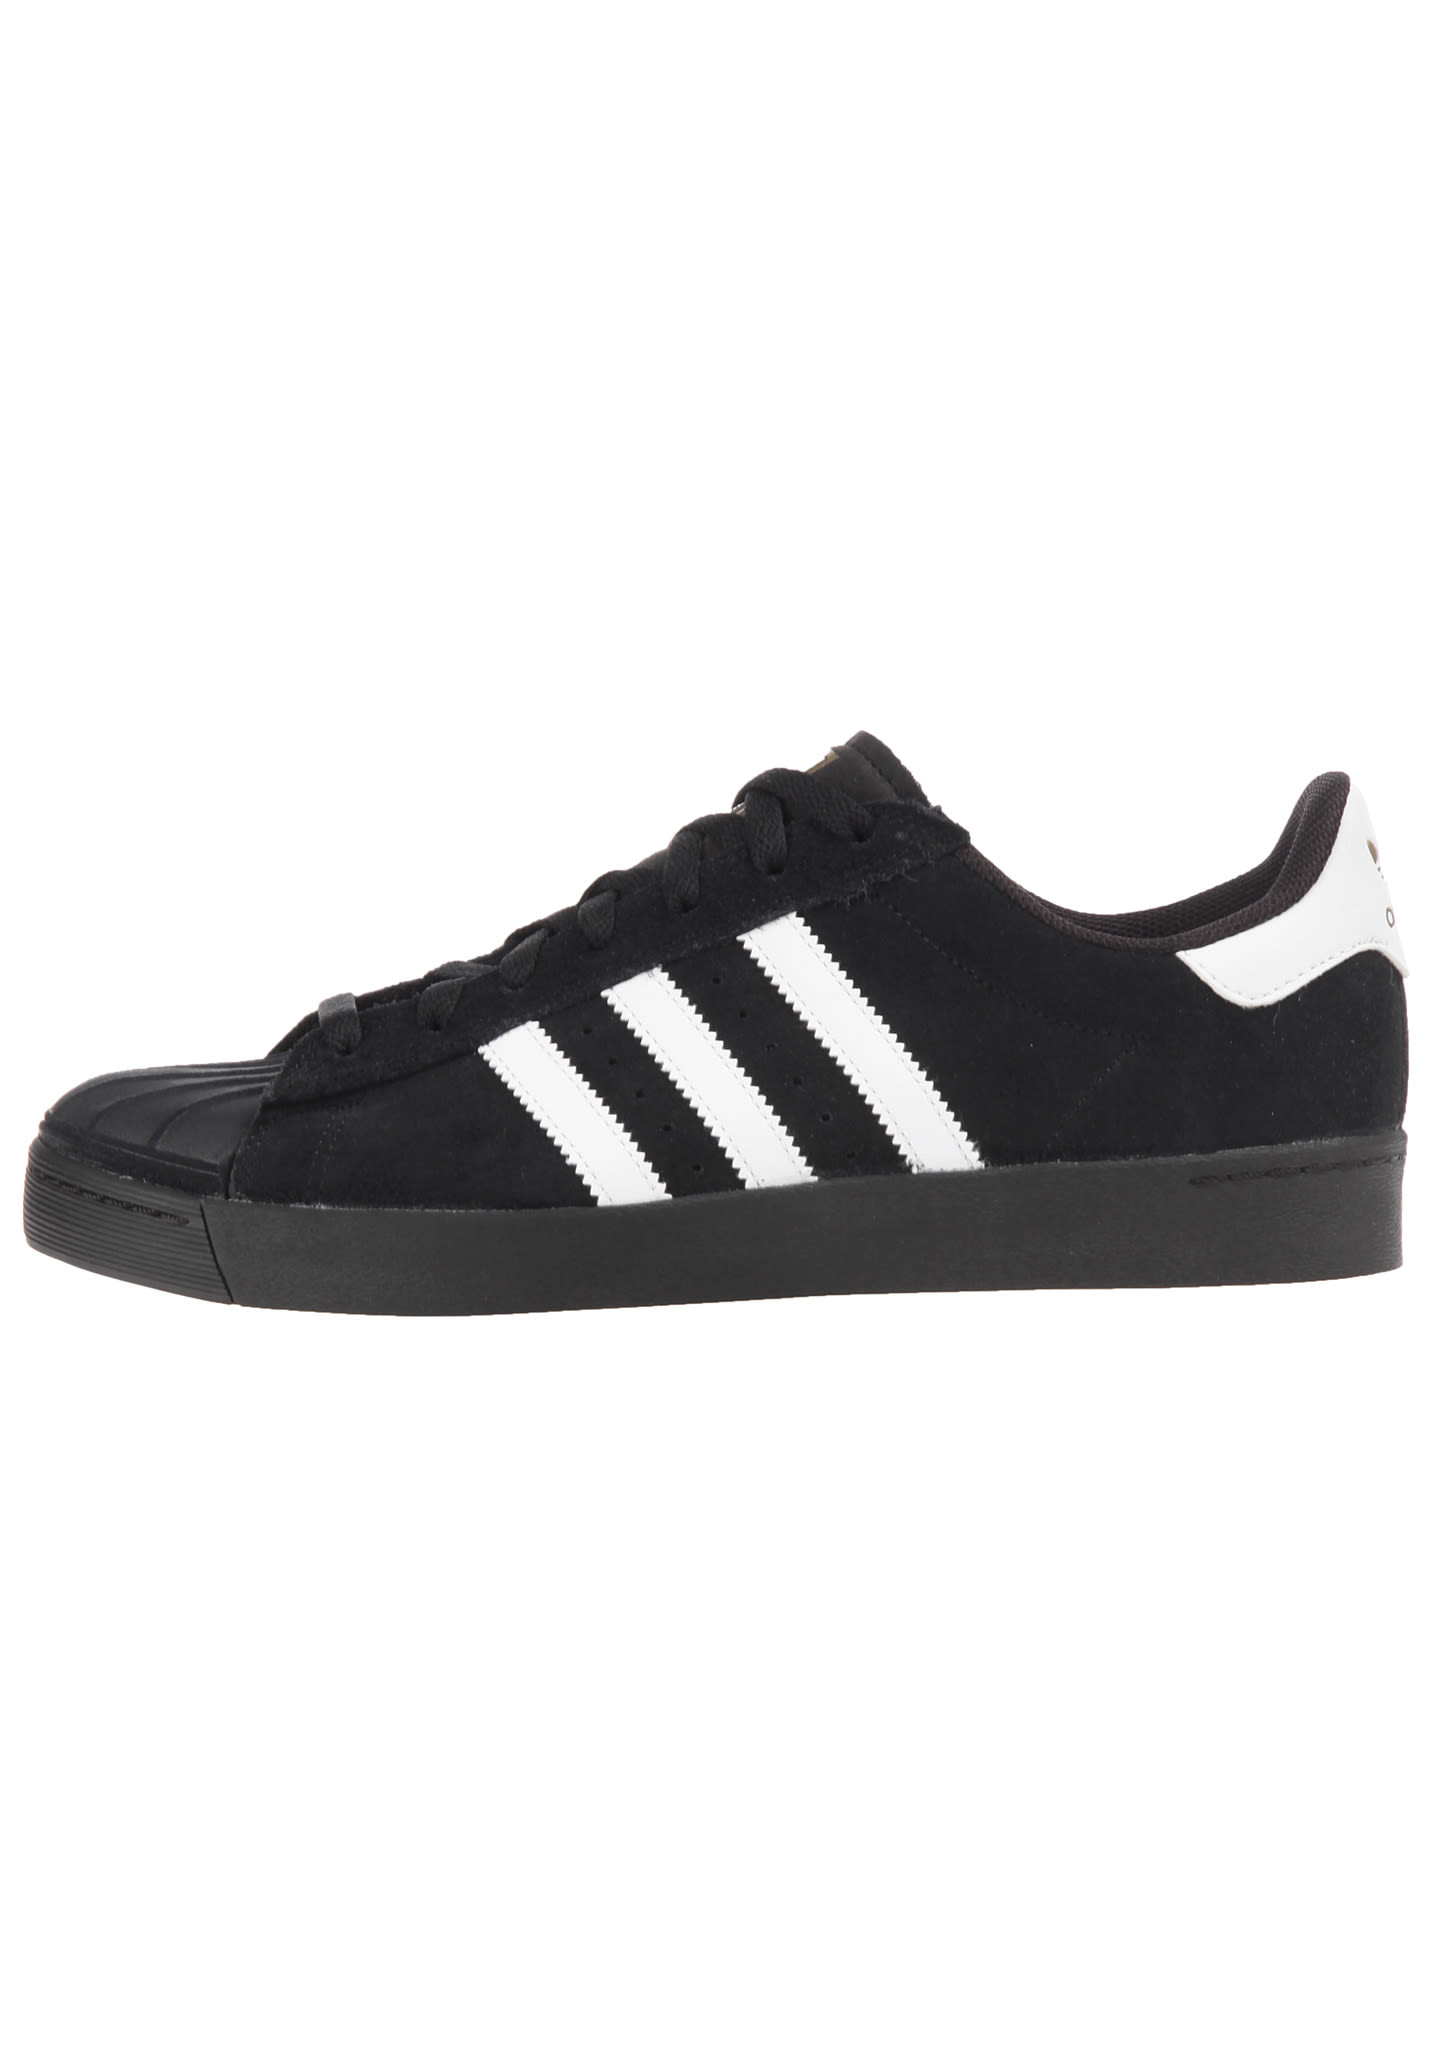 sale retailer c60df 34716 Adidas Skateboarding Superstar Vulc Adv - Sneakers for Men - Black - Planet  Sports